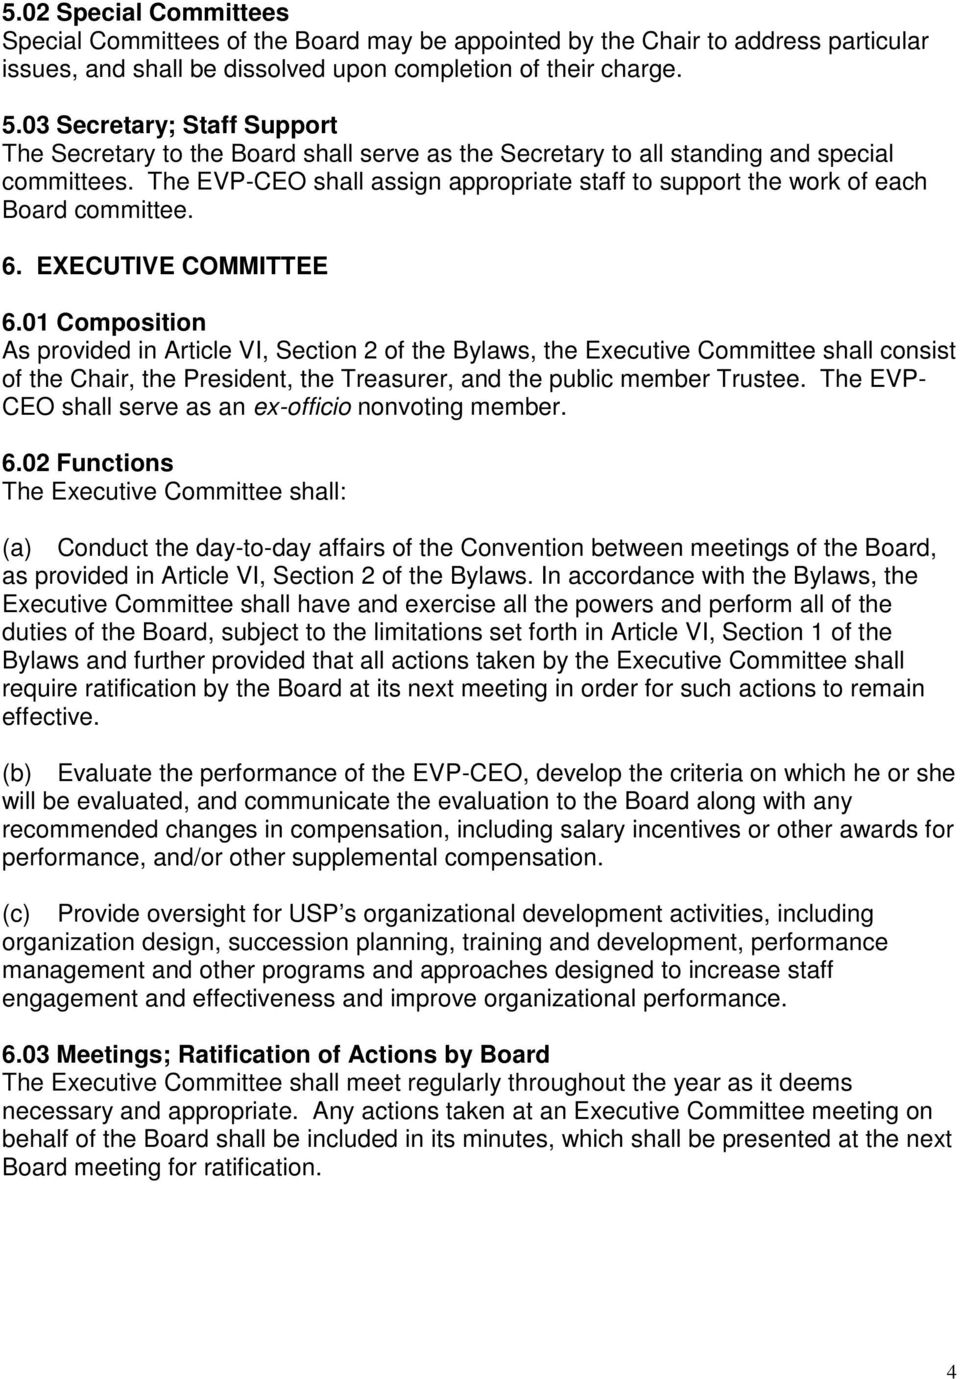 The EVP-CEO shall assign appropriate staff to support the work of each Board committee. 6. EXECUTIVE COMMITTEE 6.